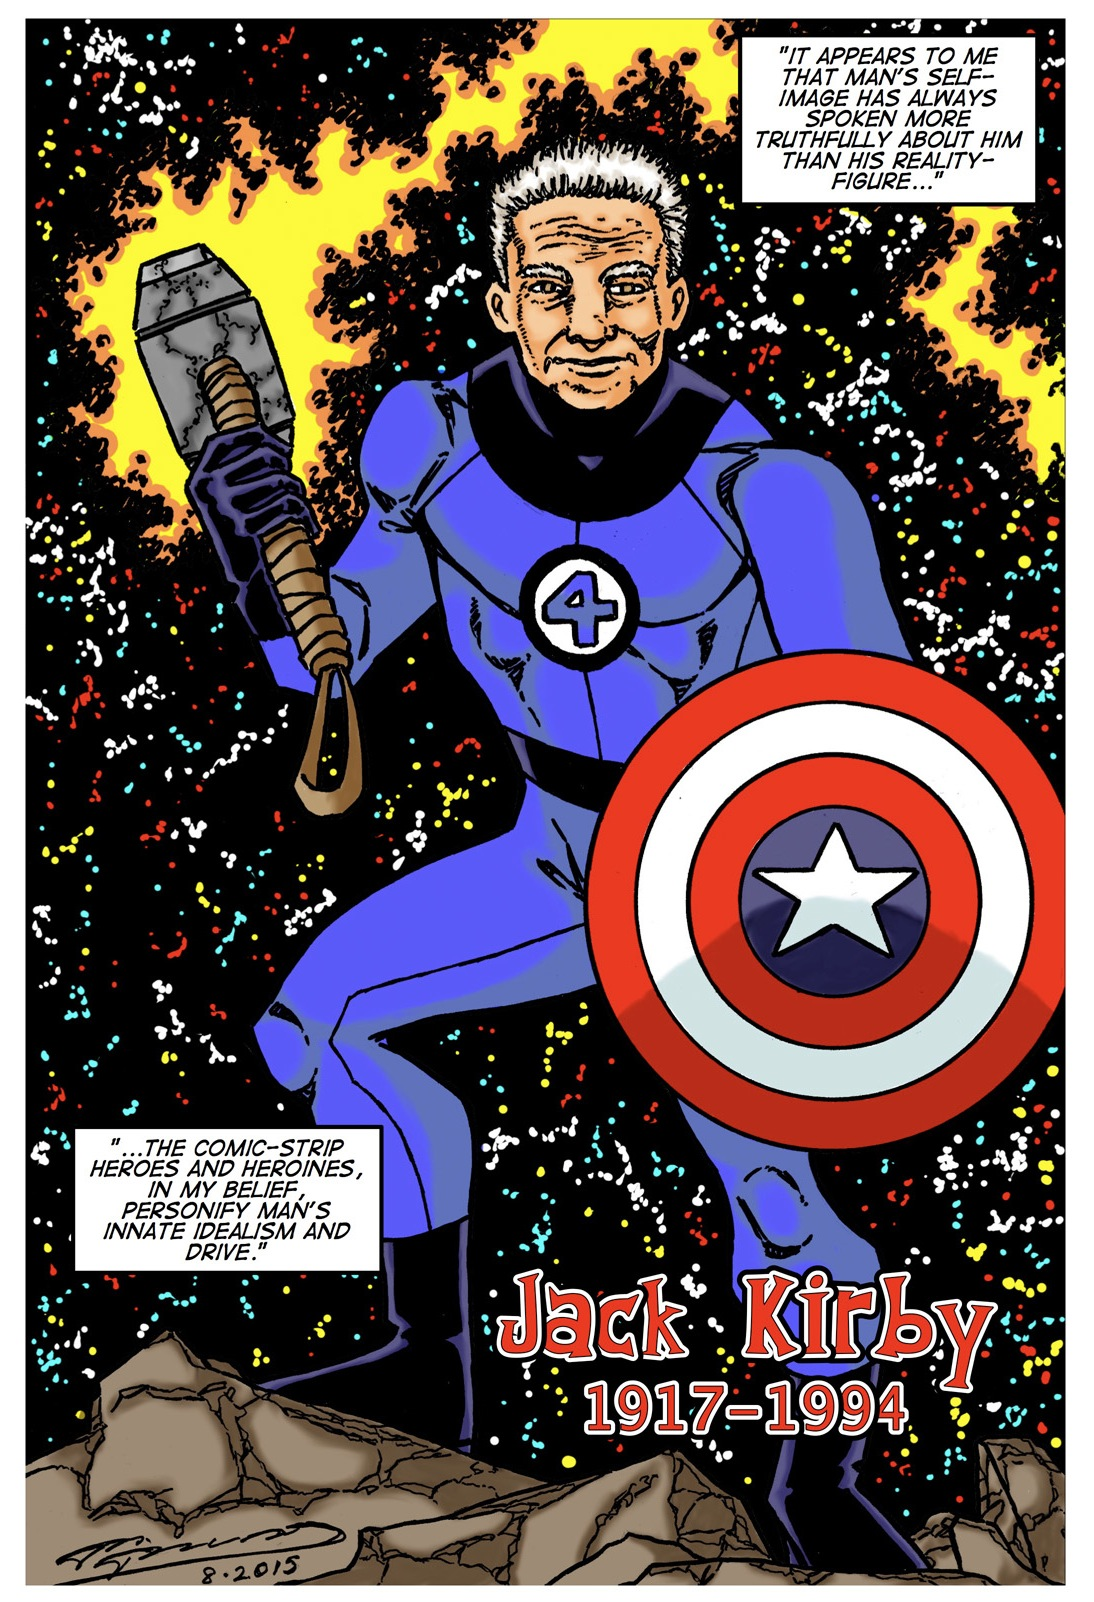 Kirby 2015 Color Lettered 150